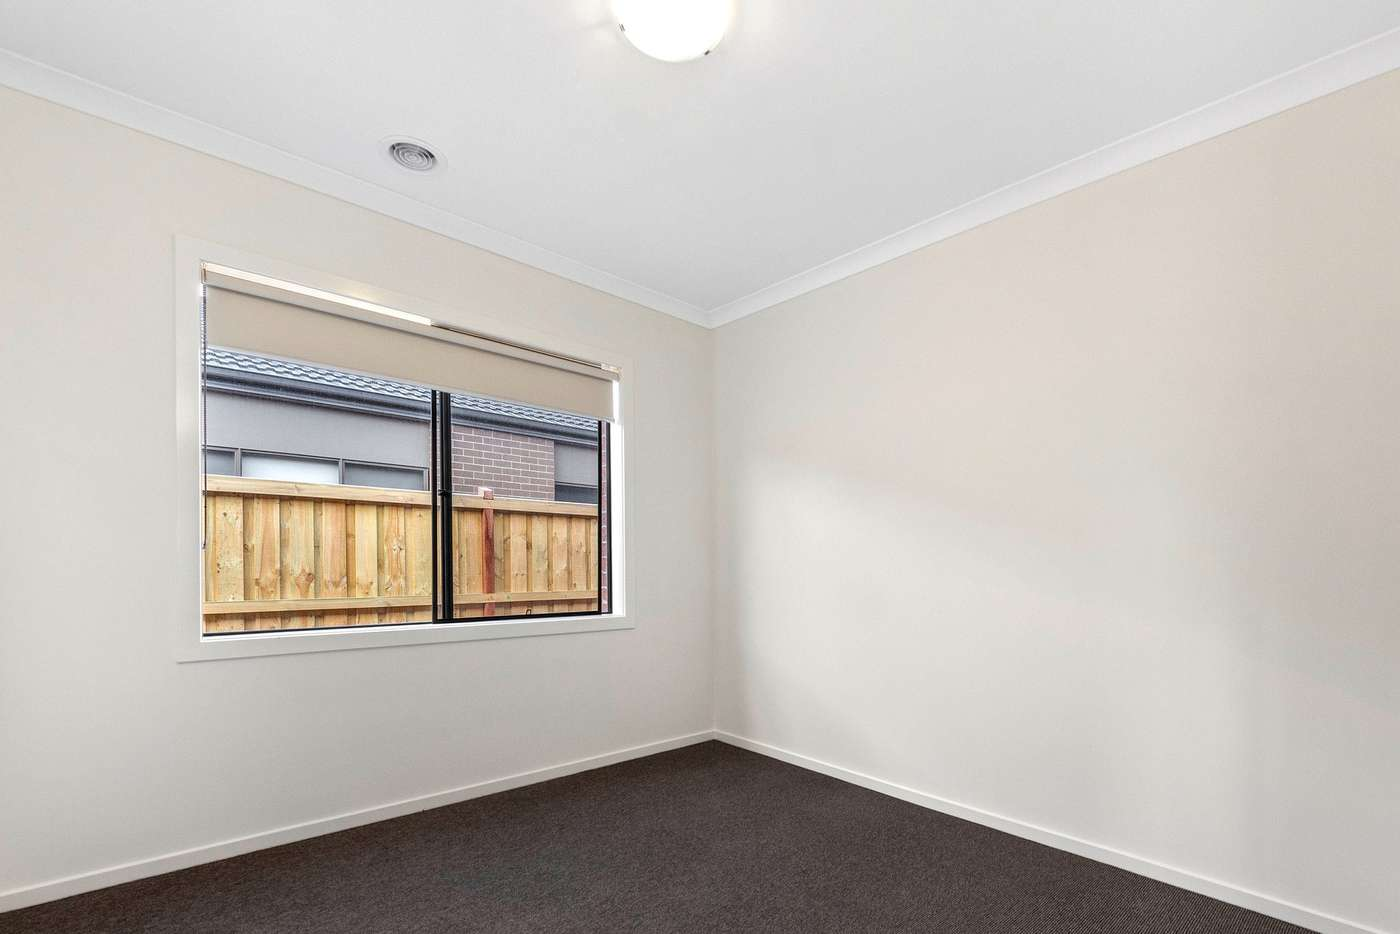 Sixth view of Homely house listing, 13 Weighbridge Avenue, Wyndham Vale VIC 3024